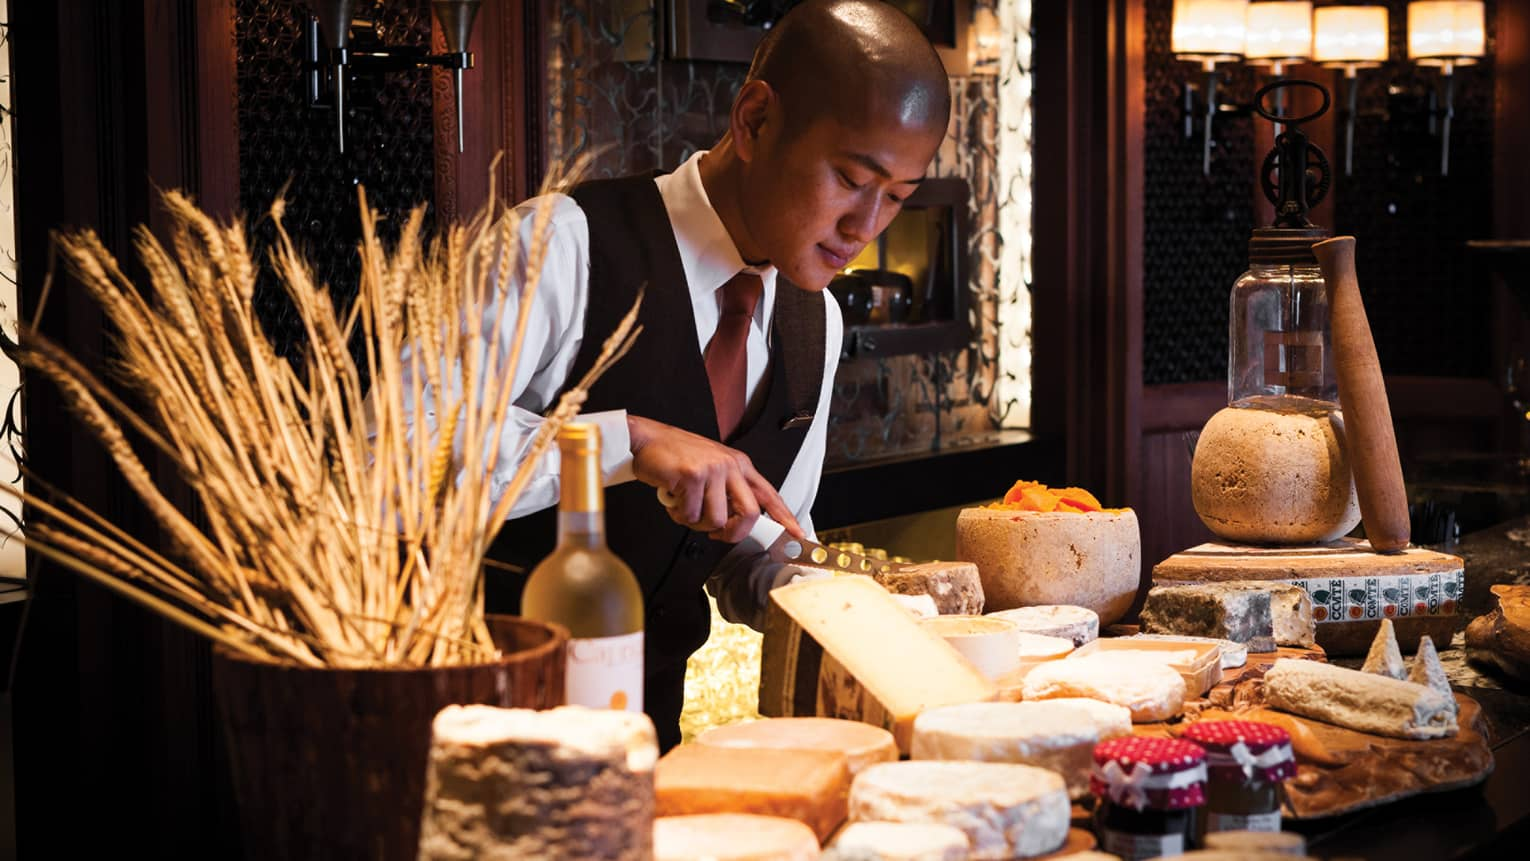 Hotel staff in vest slices large wedge of cheese on counter with cheeses, jams